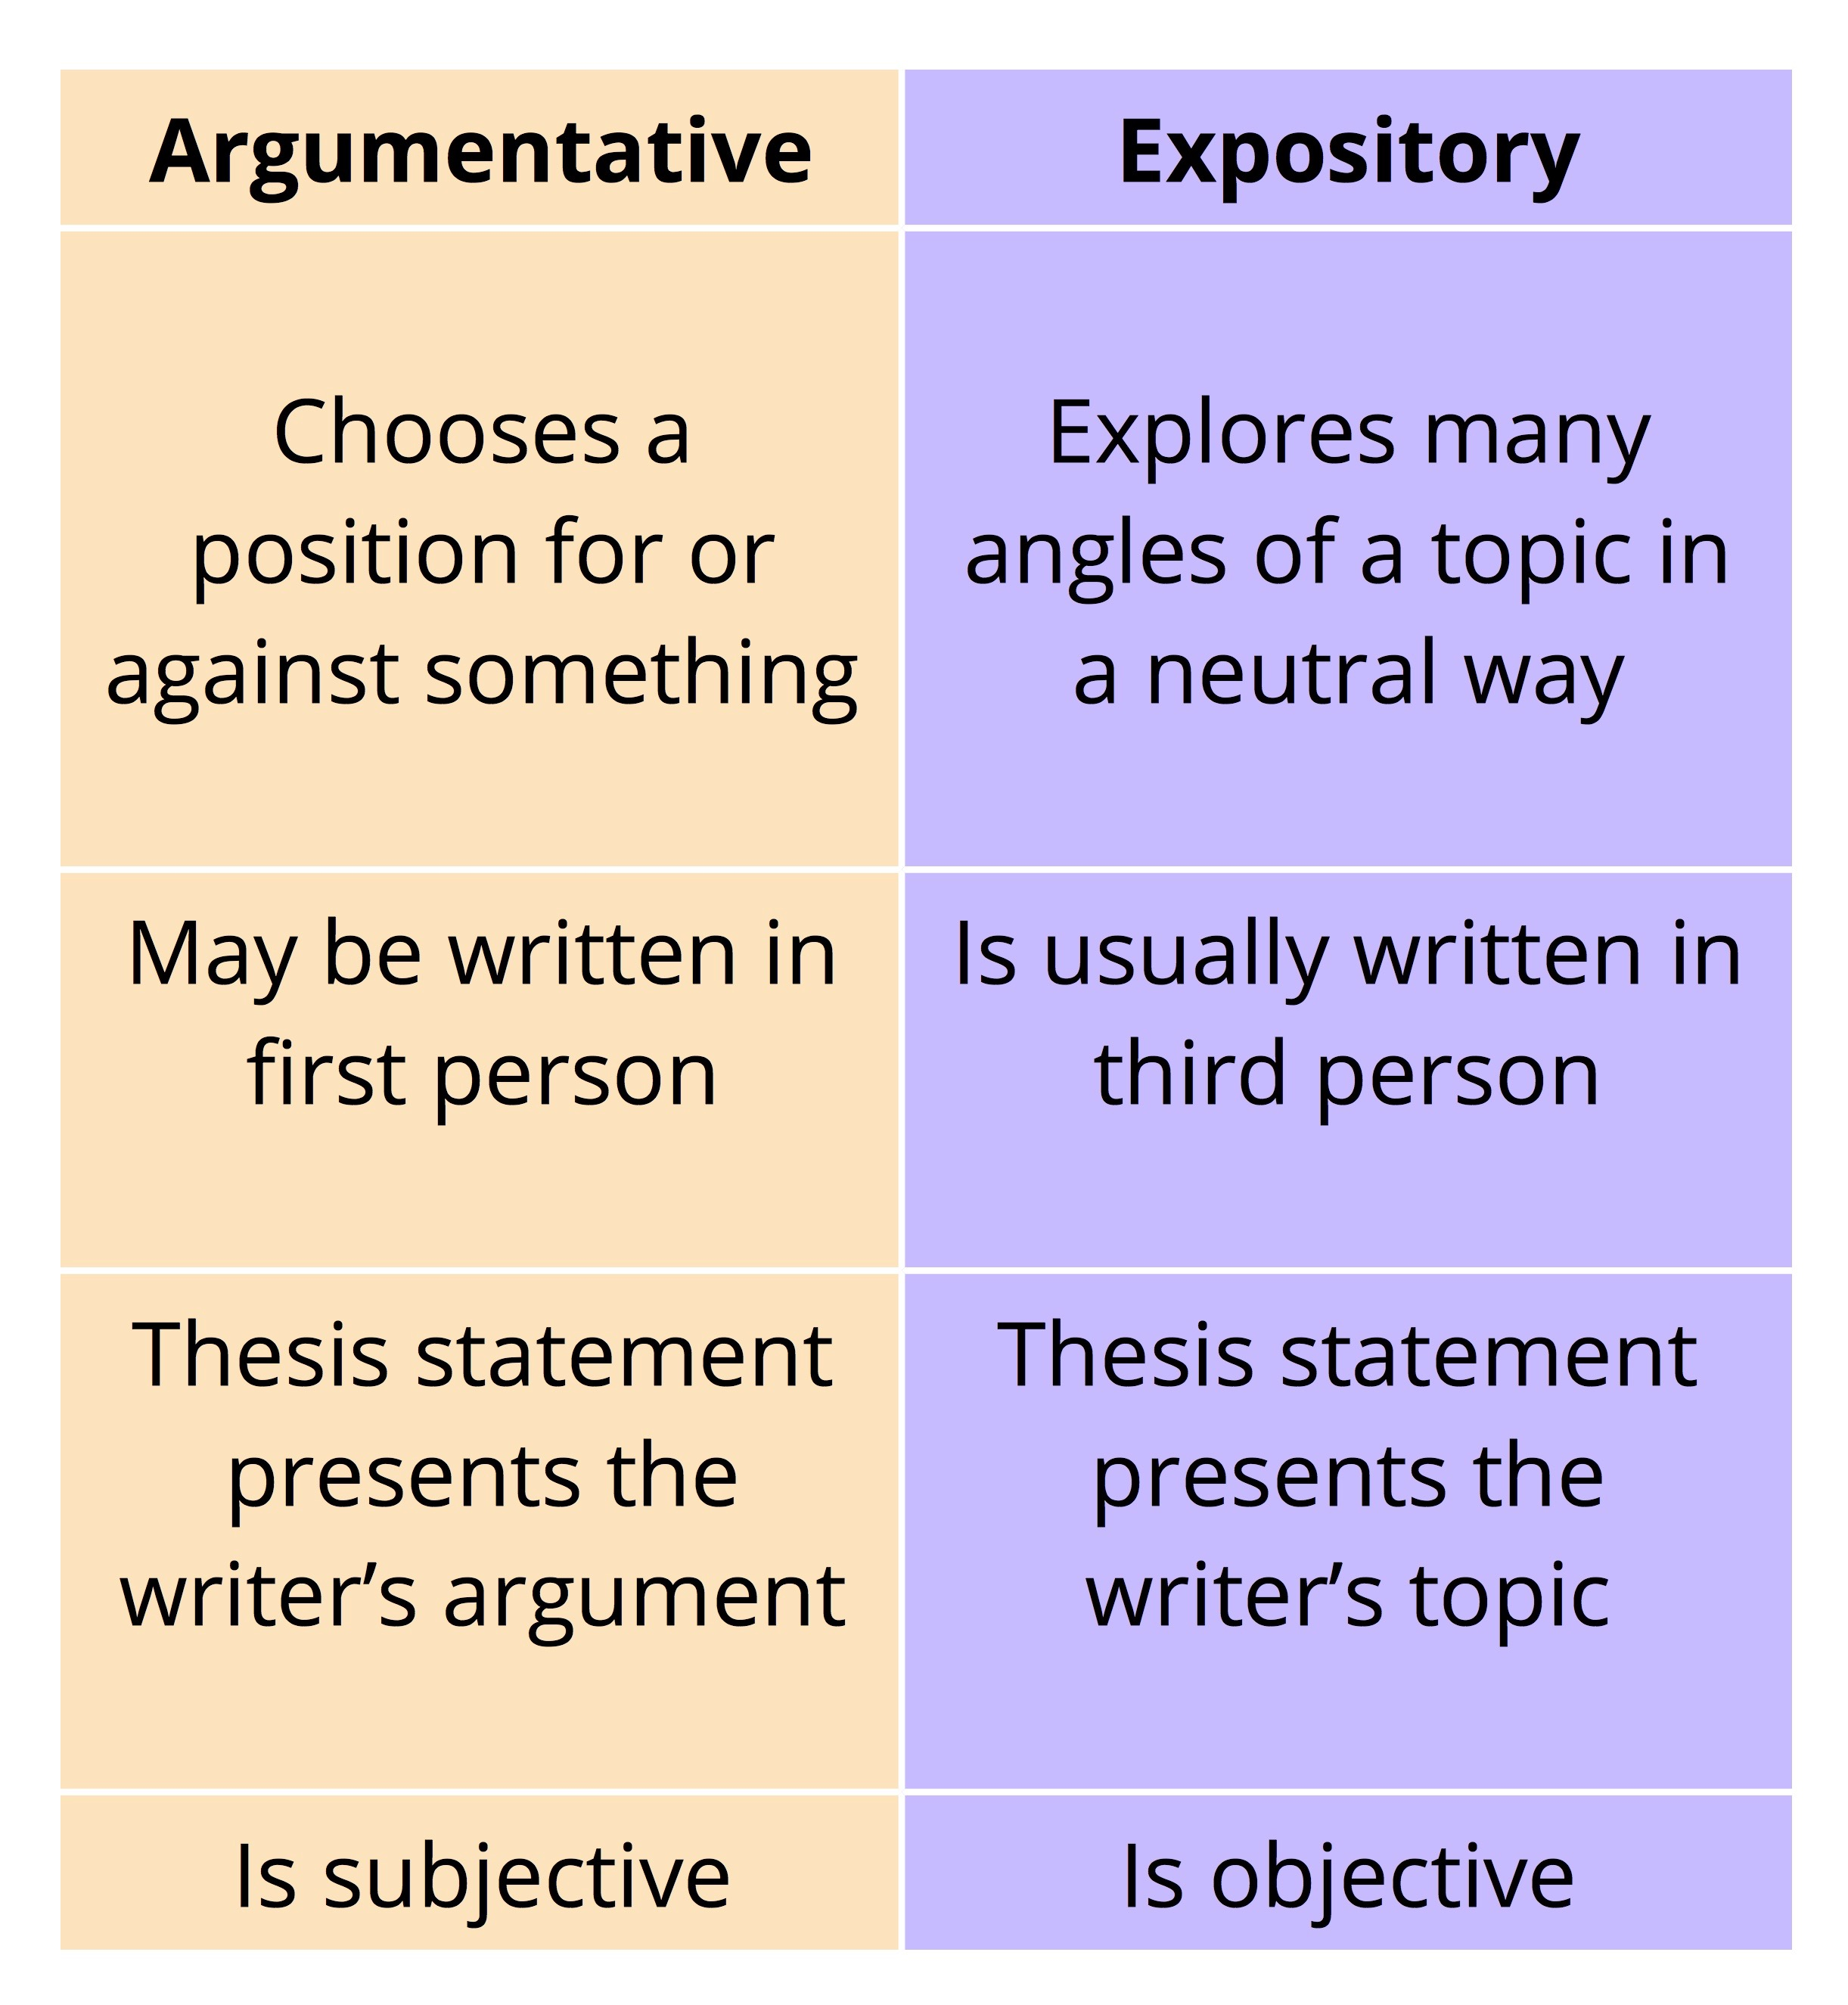 010 How To Write Anpository Essay Tigers Start Argumentative Conclusion The Differences Between And E Body Paragraph Introductionampleamples Thesis Remarkable An Expository Step By Pdf 5th Grade Full